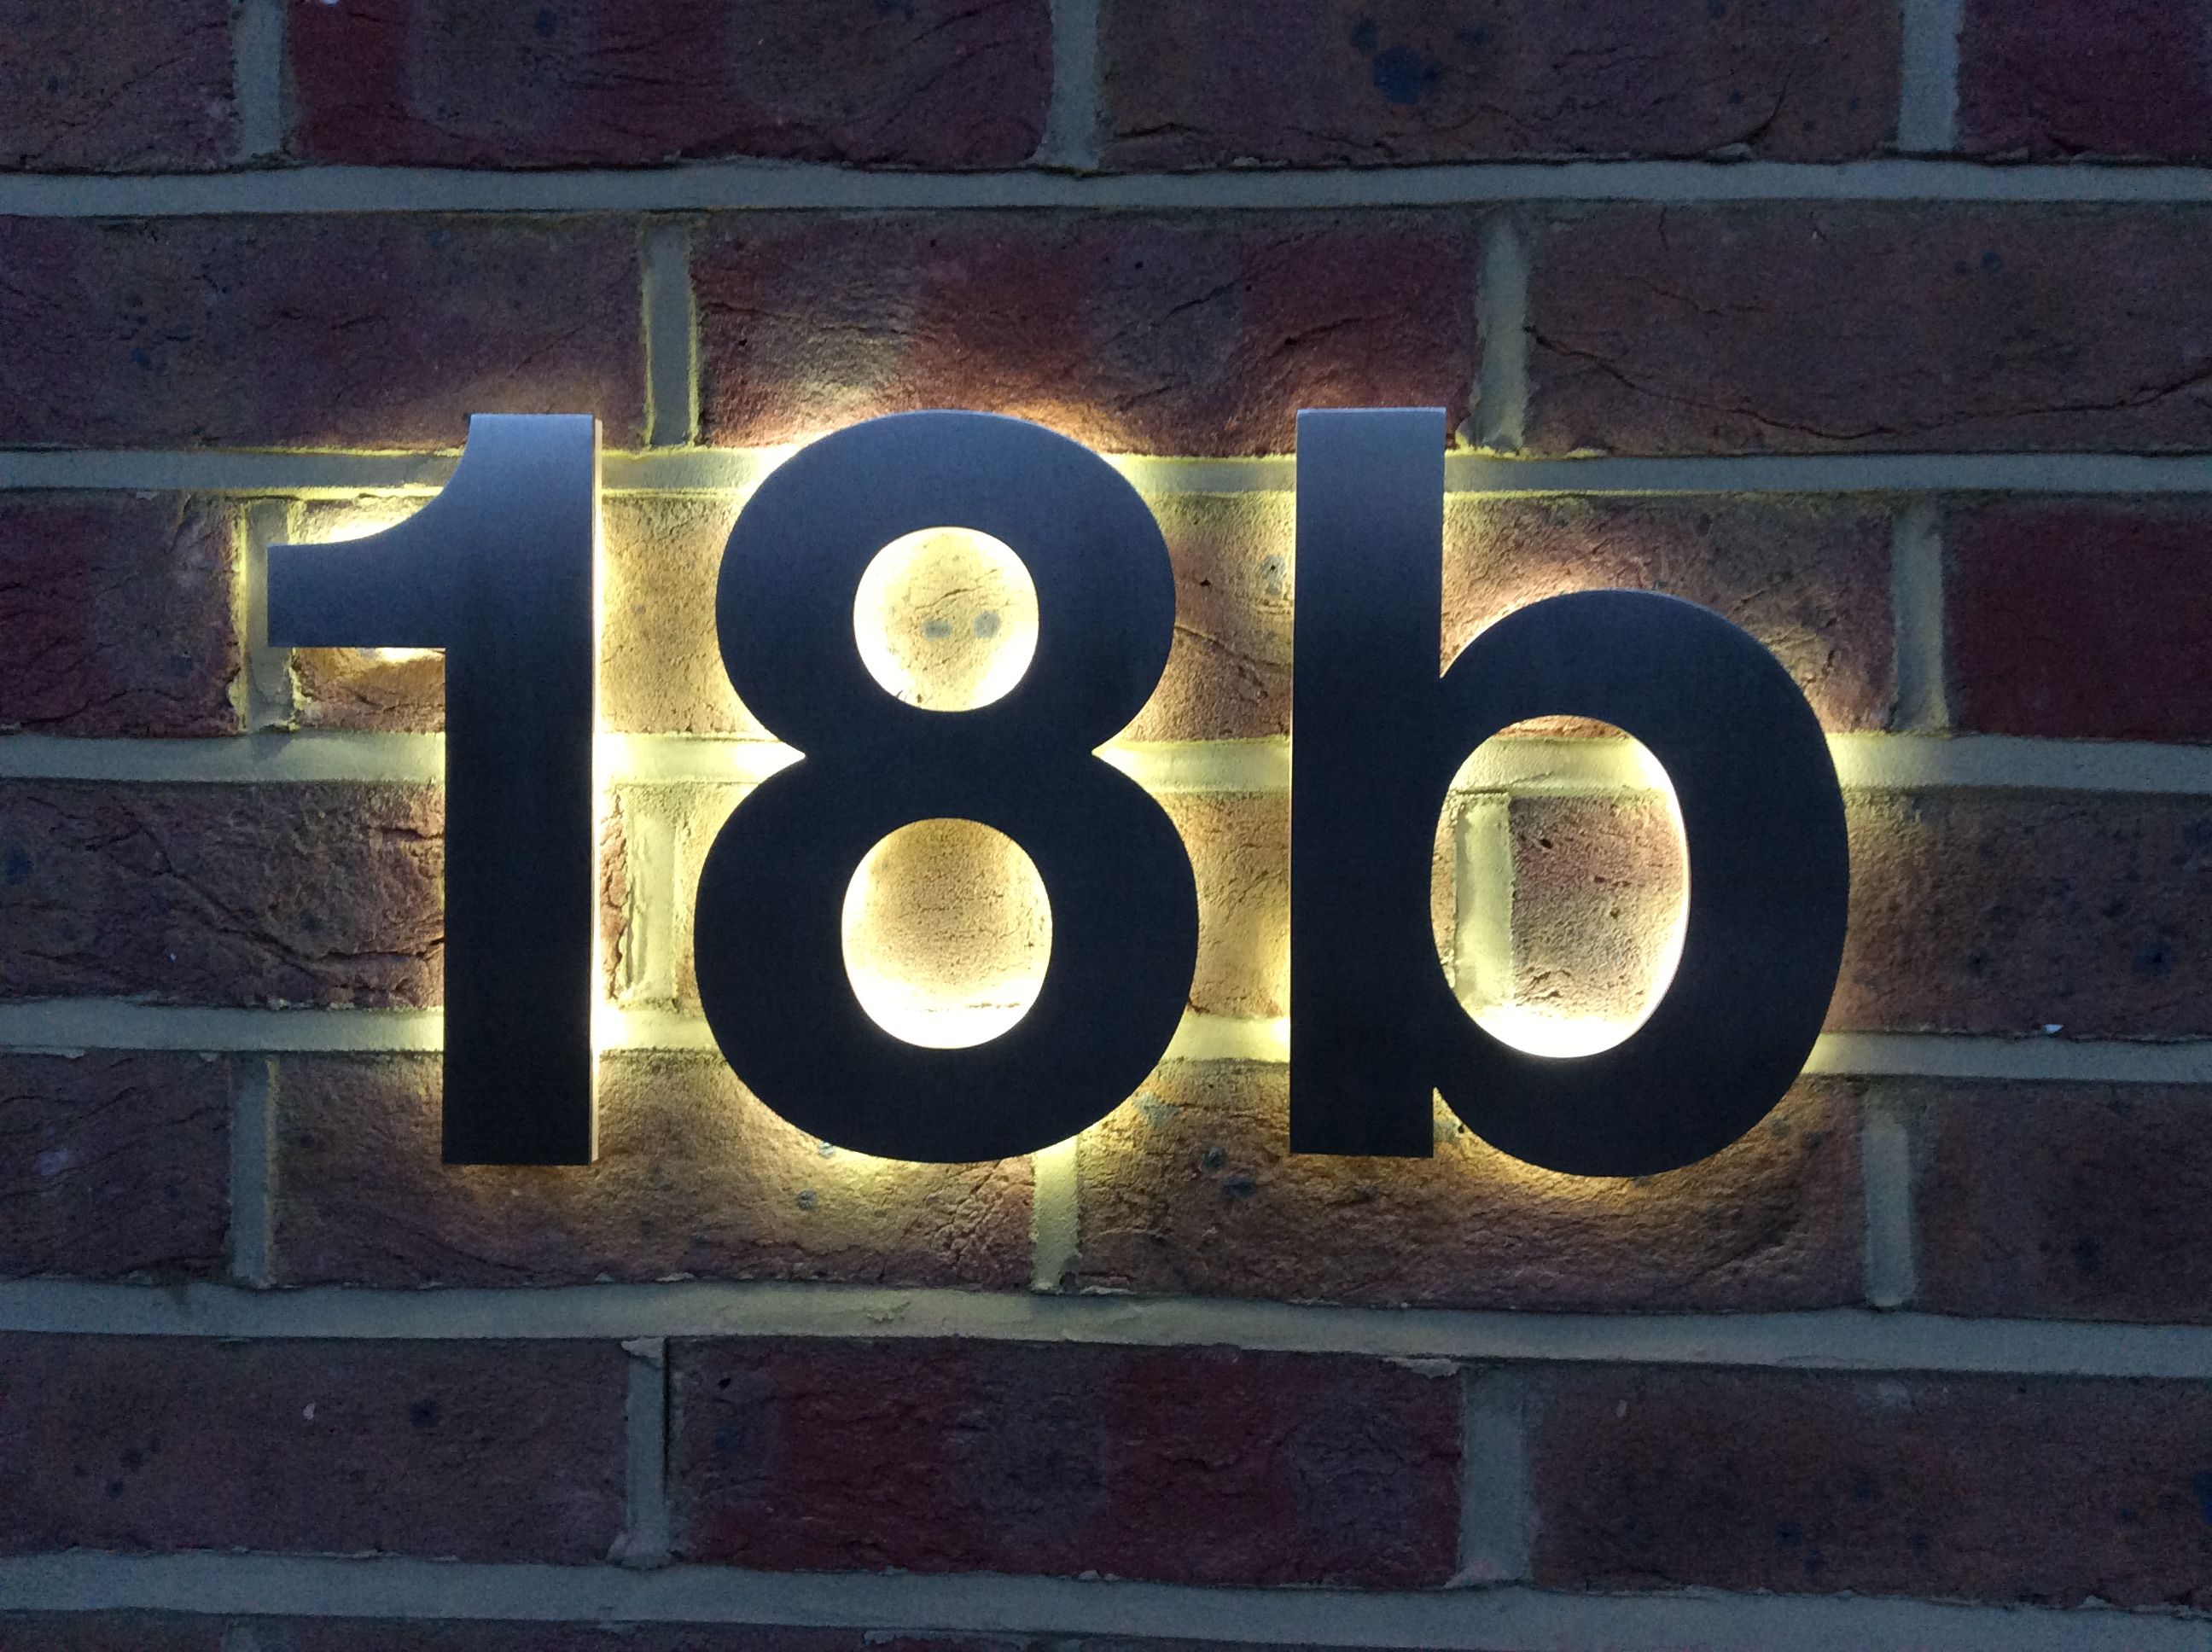 Our latest design solution for a LED backlit house number based